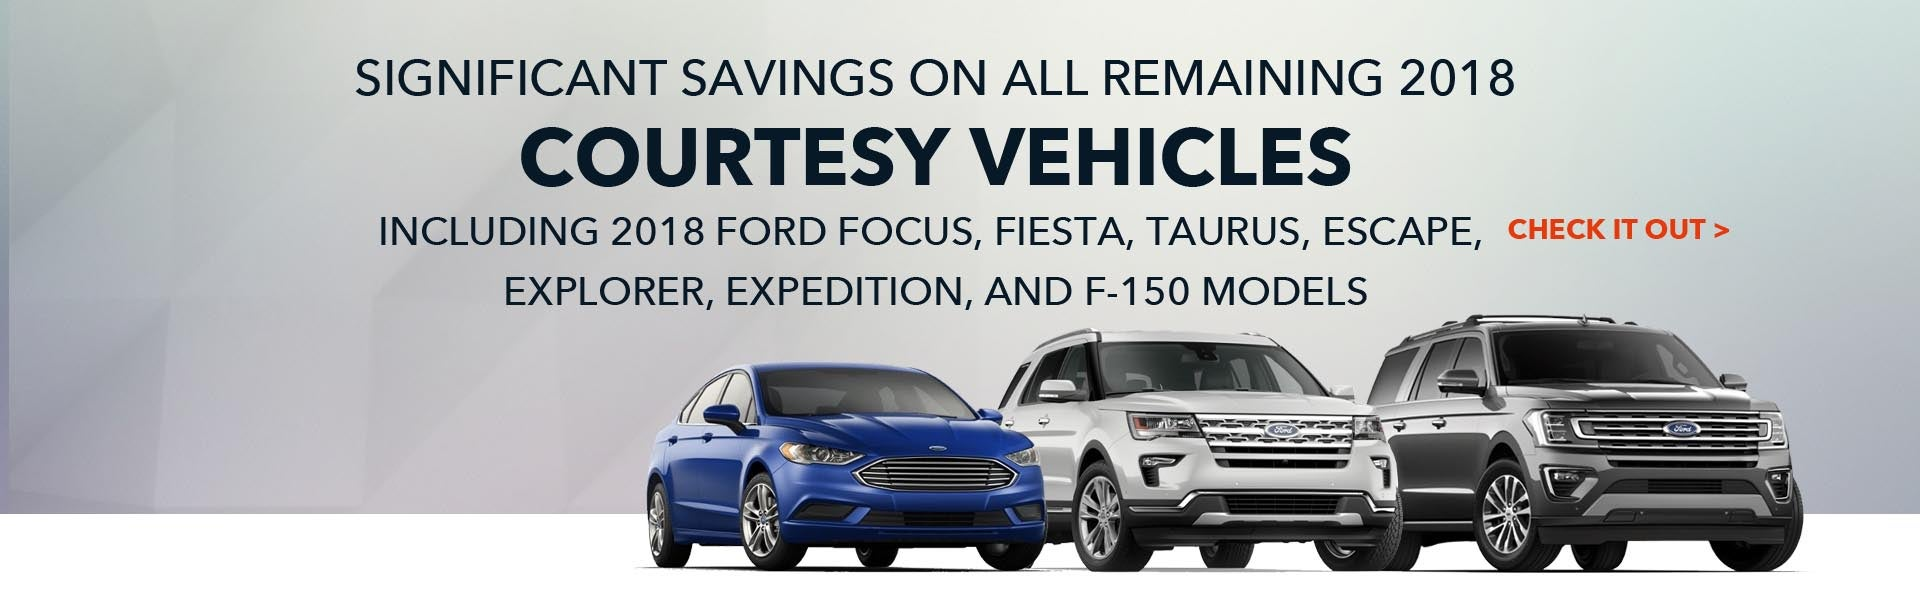 Car Dealer Ford Dealership In Houston Tx Russell Smith Ford